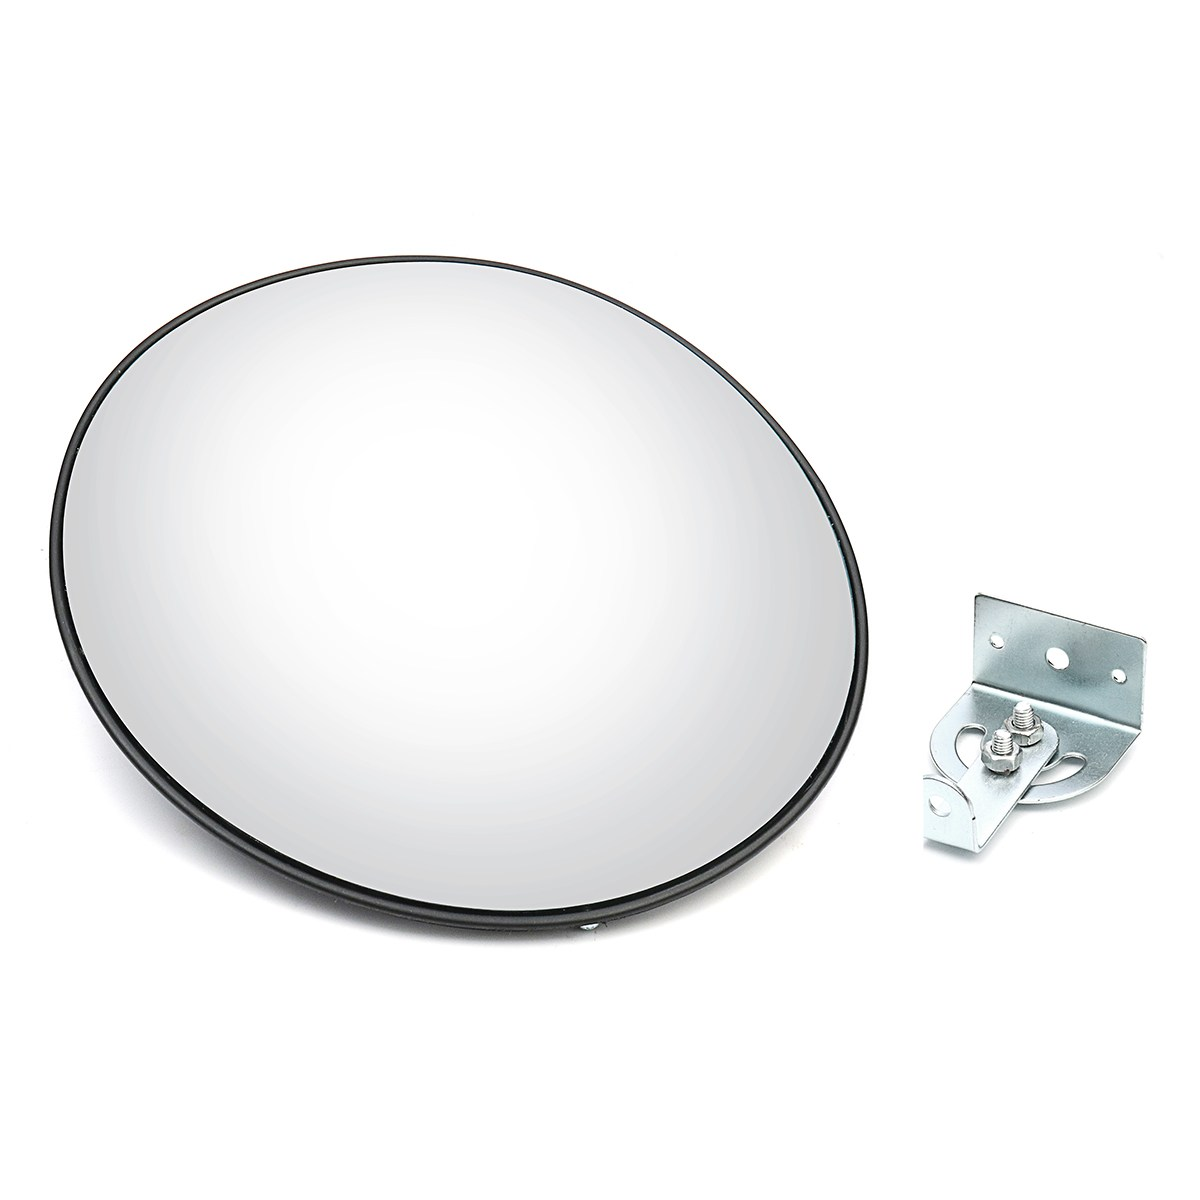 Safurance 30cm Wide Angle Curved Convex Security Road Mirror For Indoor Burglar Traffic Signal Roadway Safety